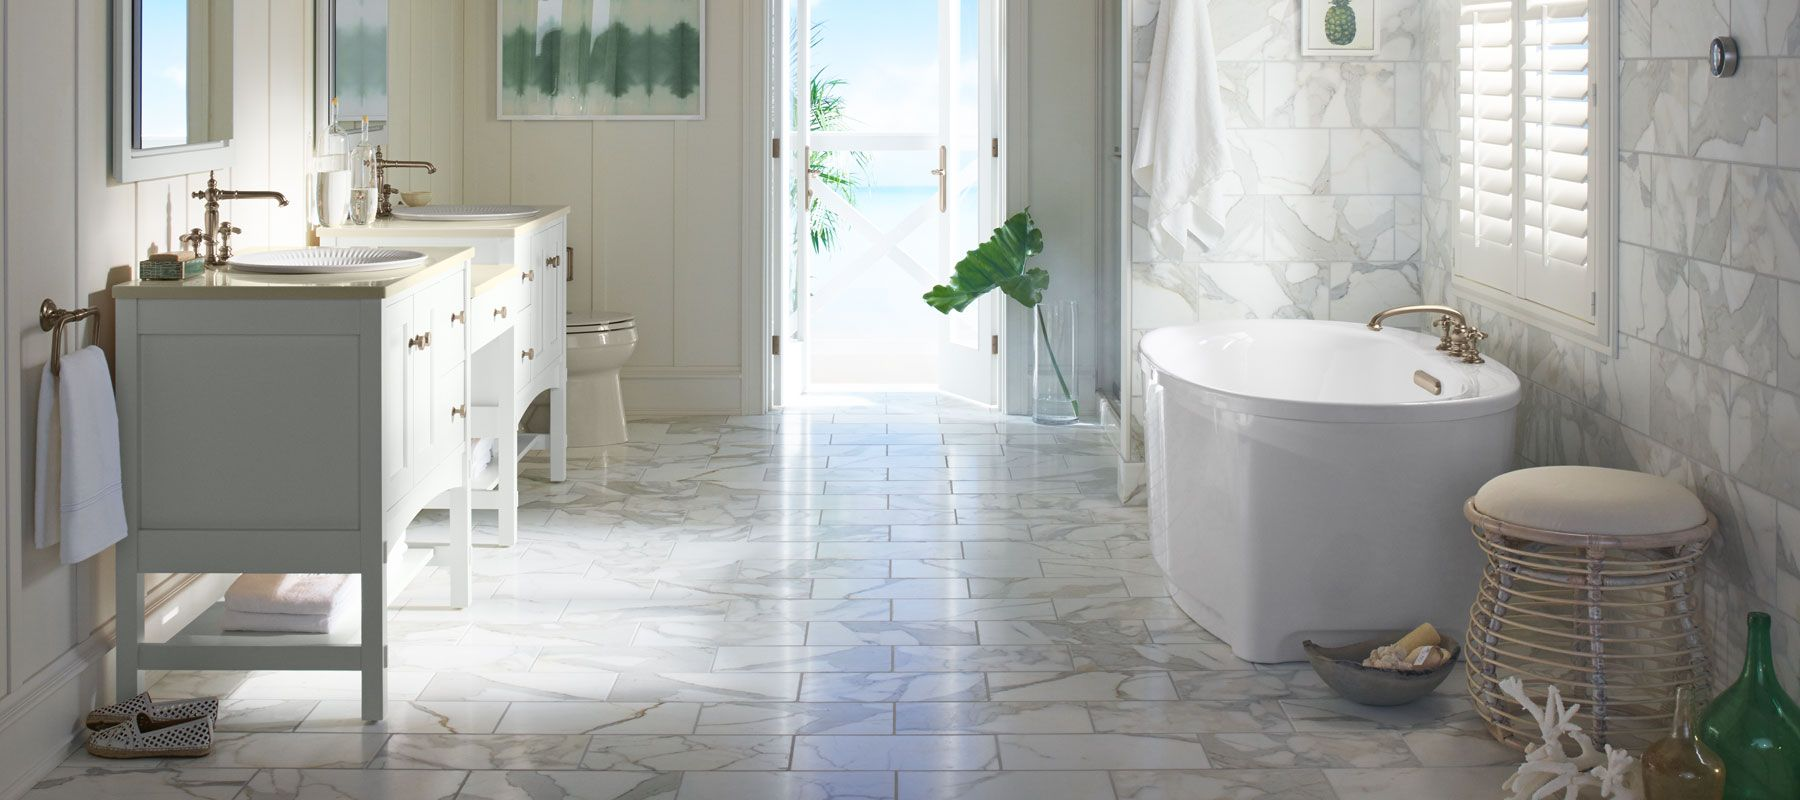 get inspired - Flooring Bathroom Ideas